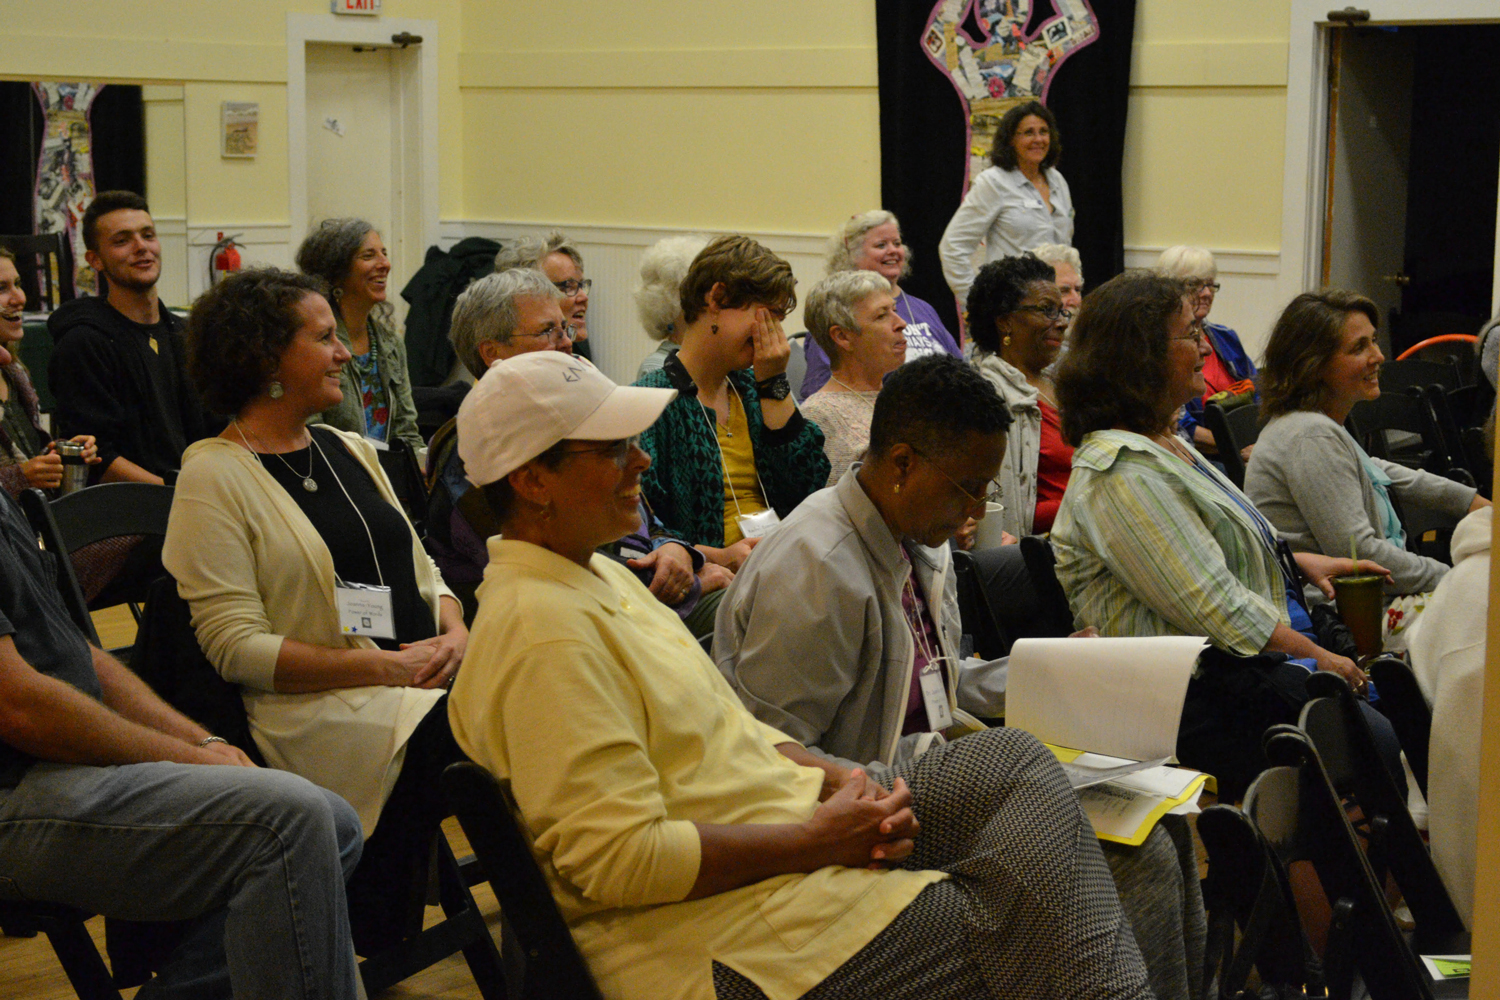 Attendees listen attentively to a presentation at a previous in-person Power of Words Conference.